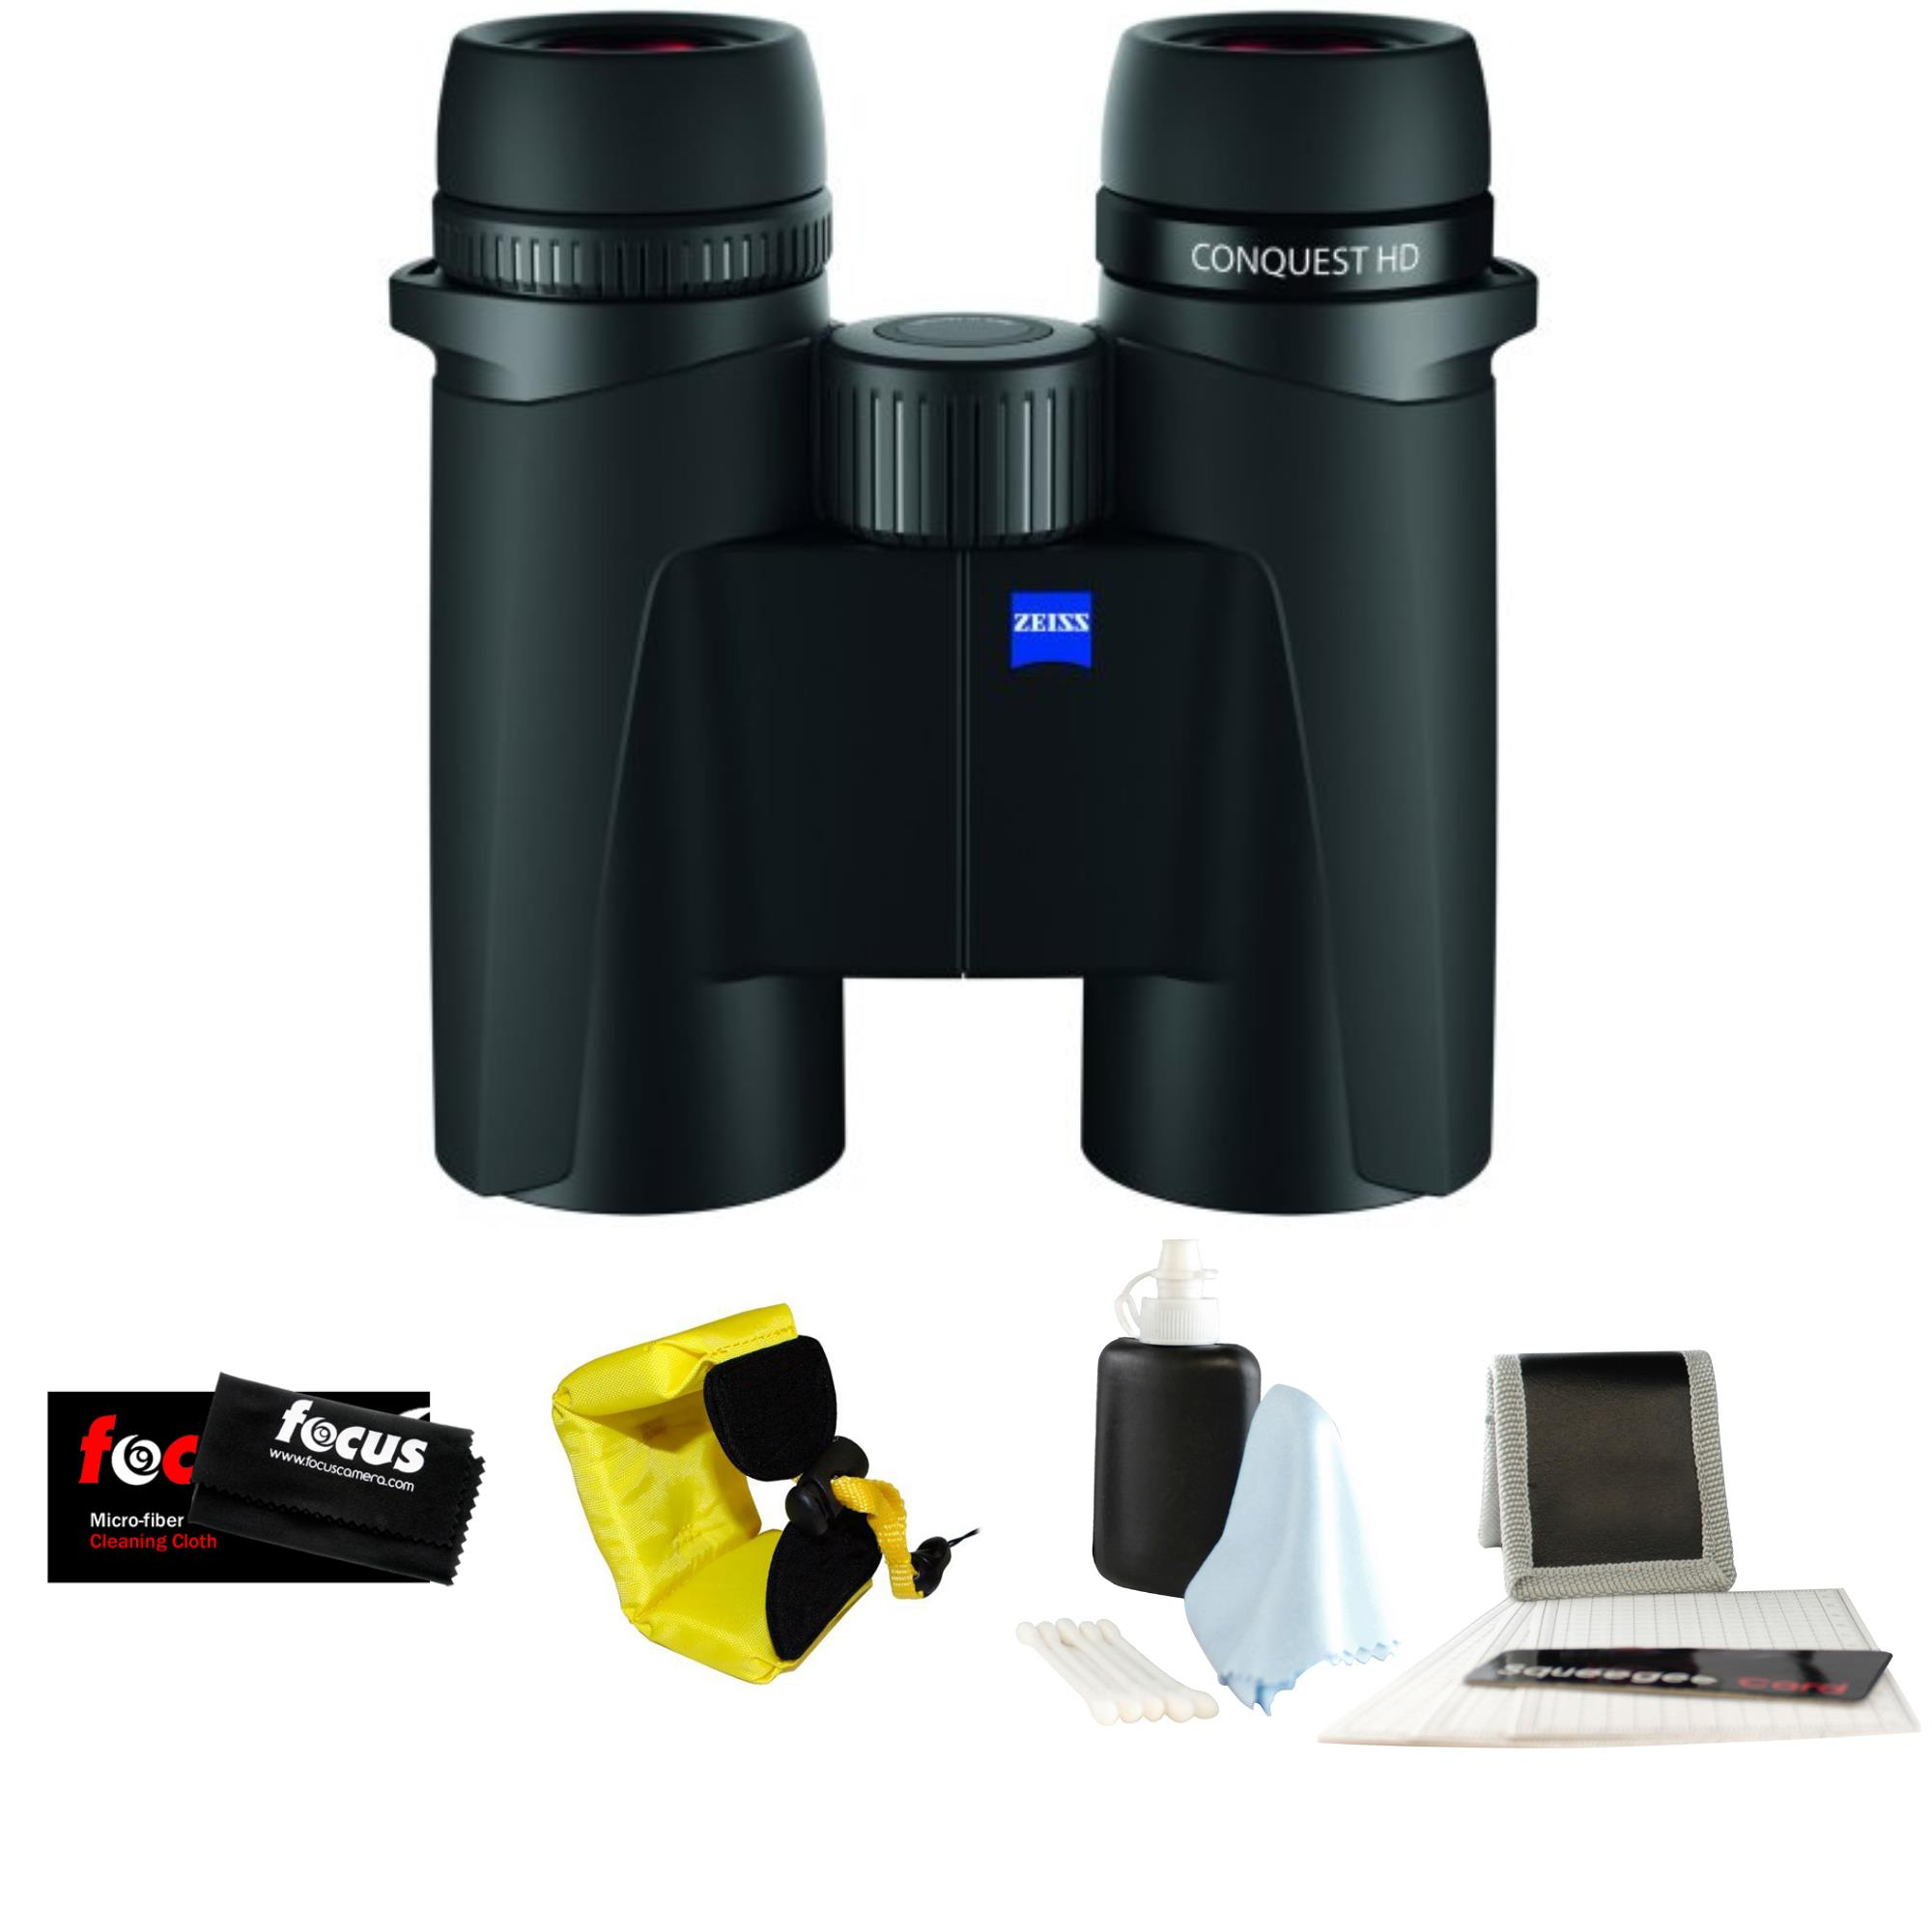 Zeiss 8x32 Conquest HD Binocular with Red Foam Strap & Cleaning Care Kit by Zeiss